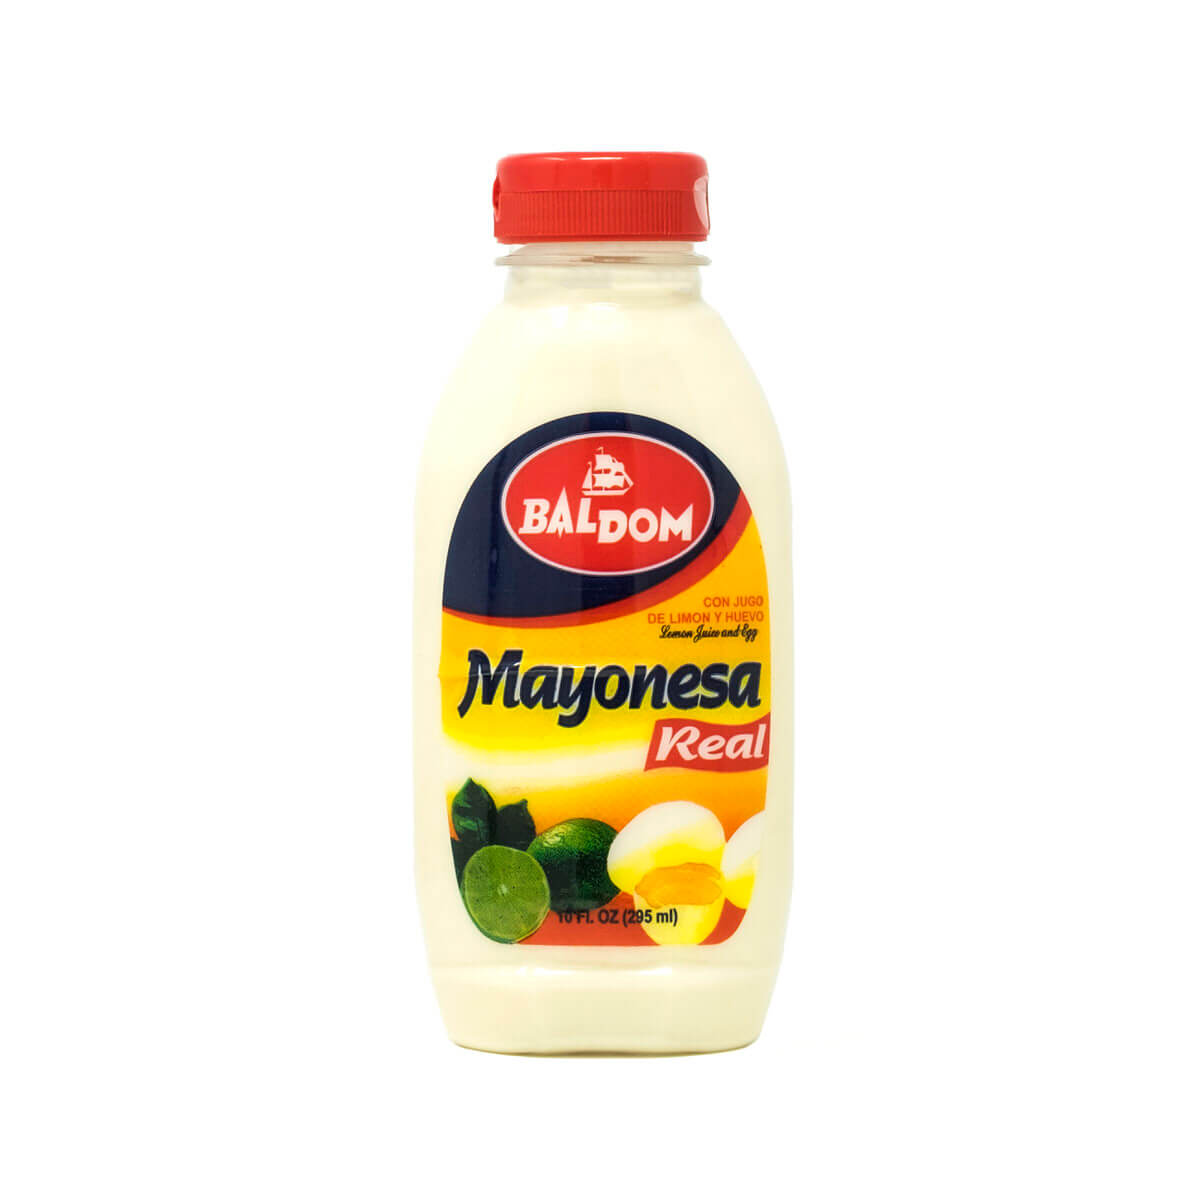 Mayonesa Real 24oz